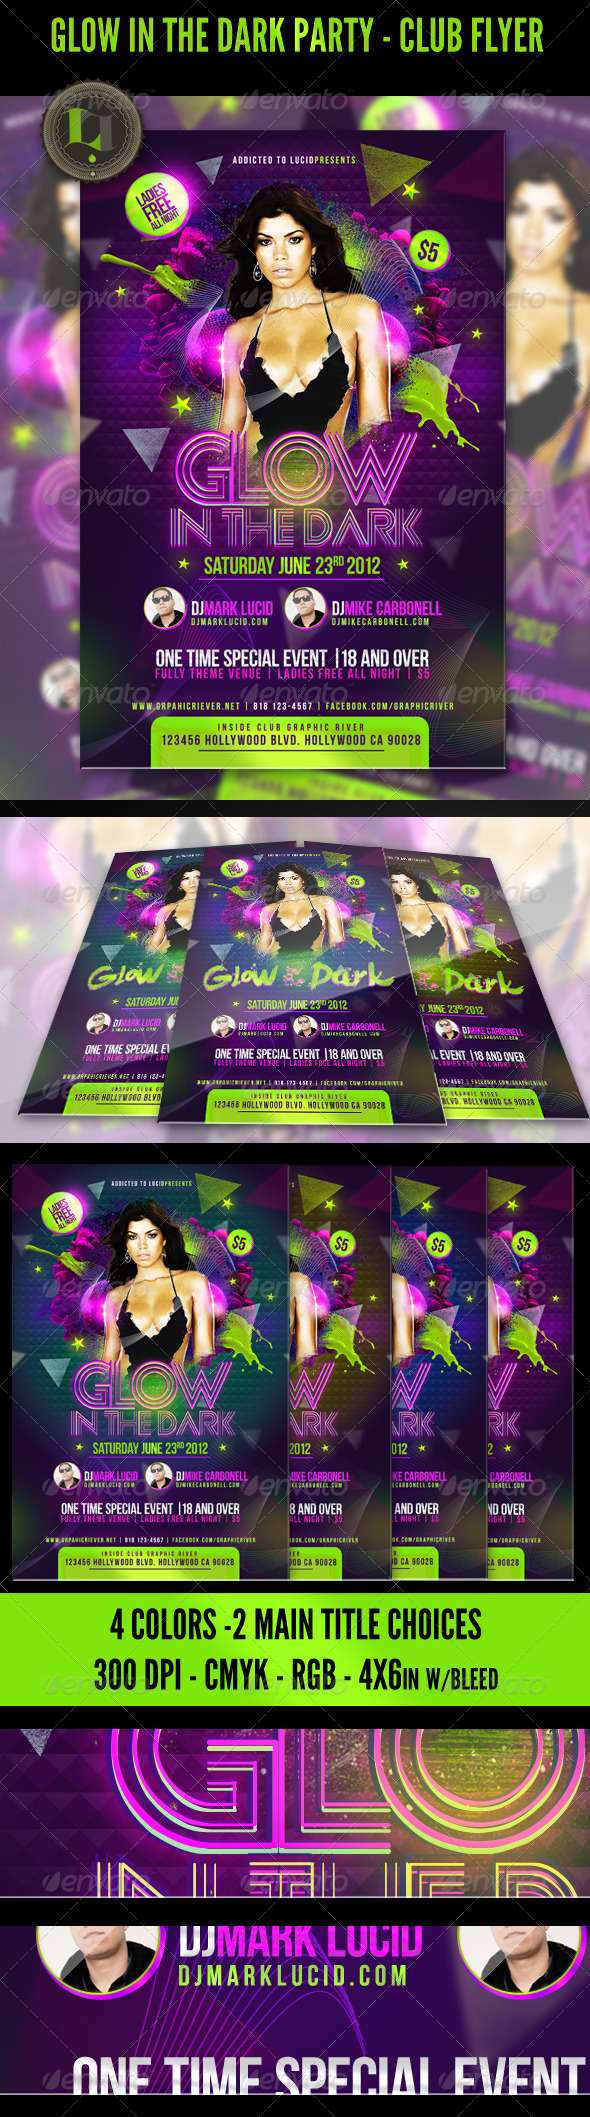 GraphicRiver Glow in the Dark Party Club Flyer 2429253